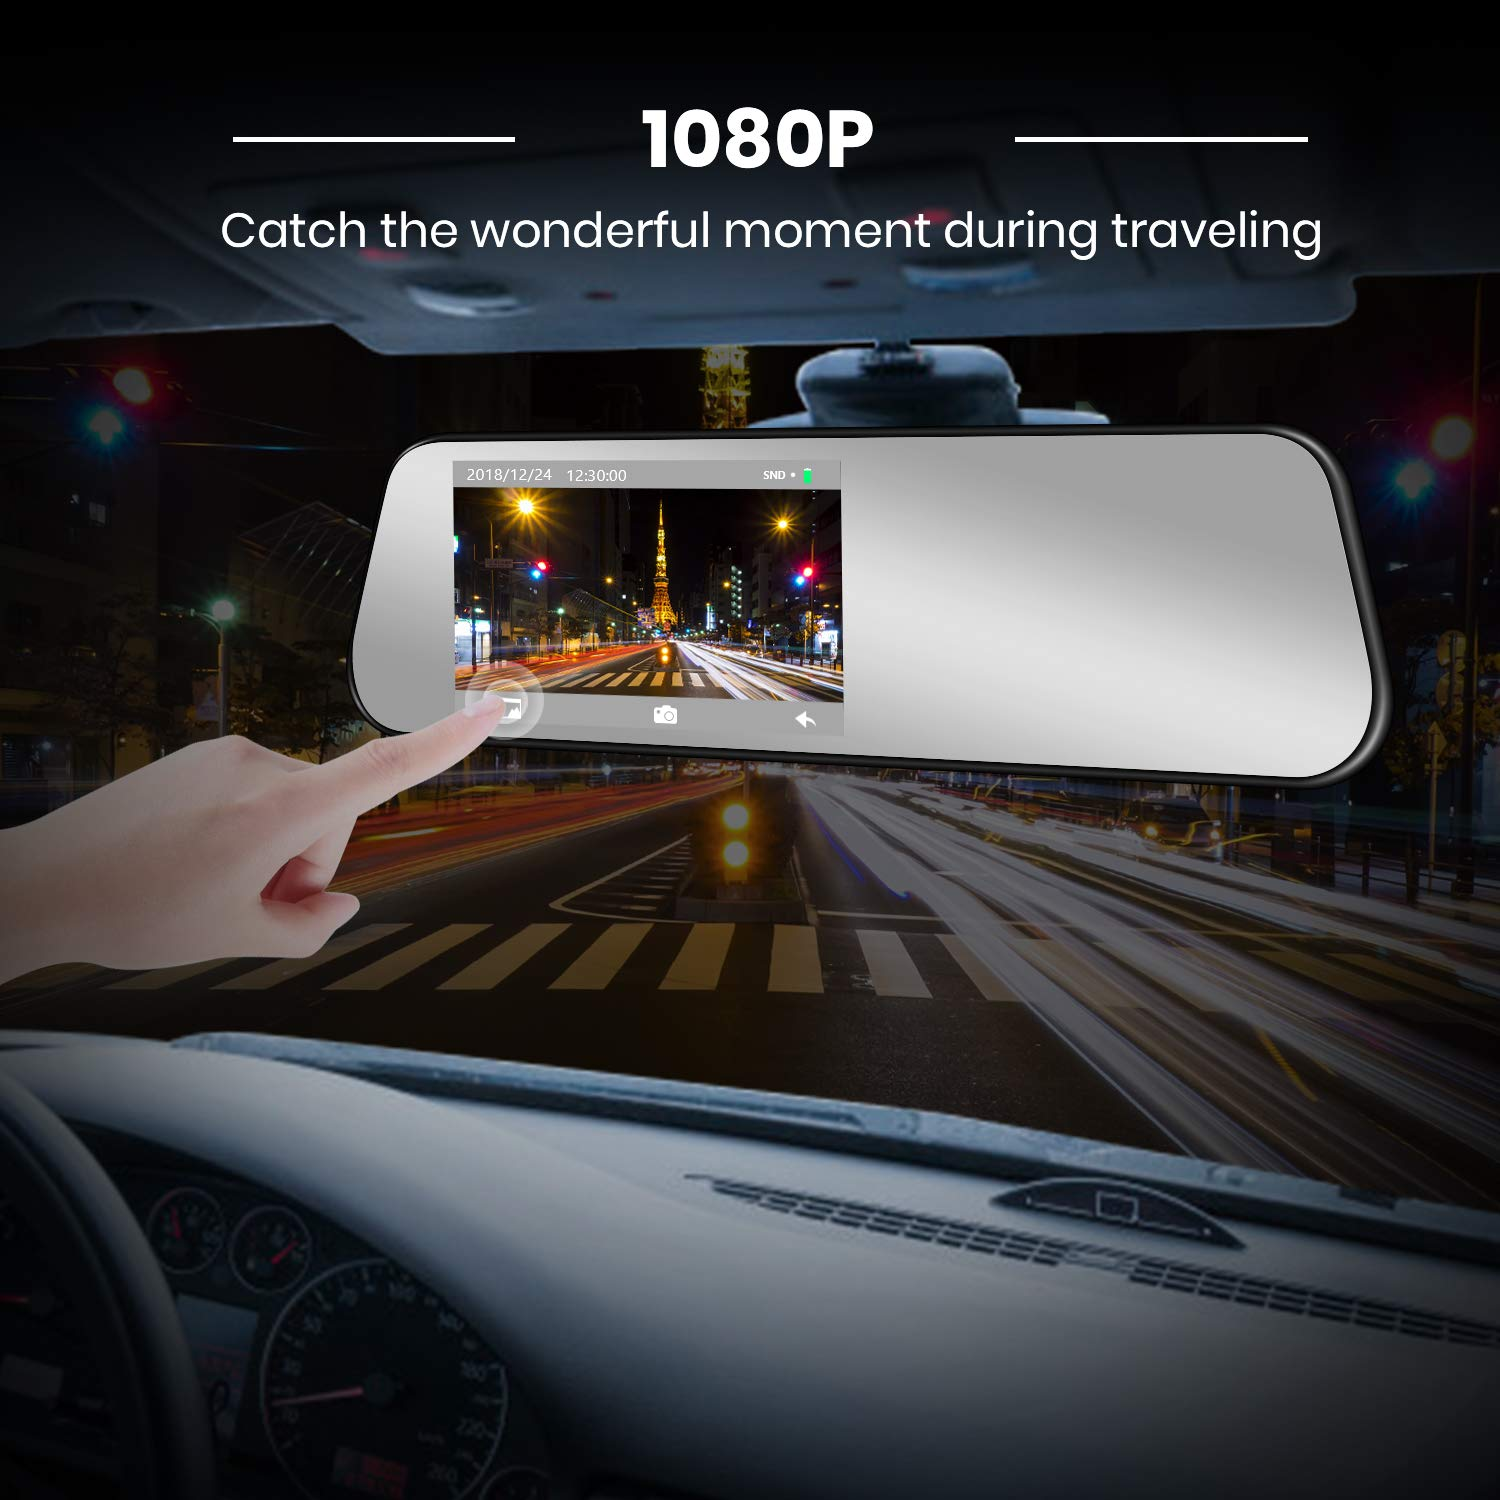 Auto Vox M6b 45touch Screen Backup Camera Dash Cam 2004 F150 Obdii Wiring Harness Ip 68 Waterproof Super Night Vision Rear View With Motion Detection